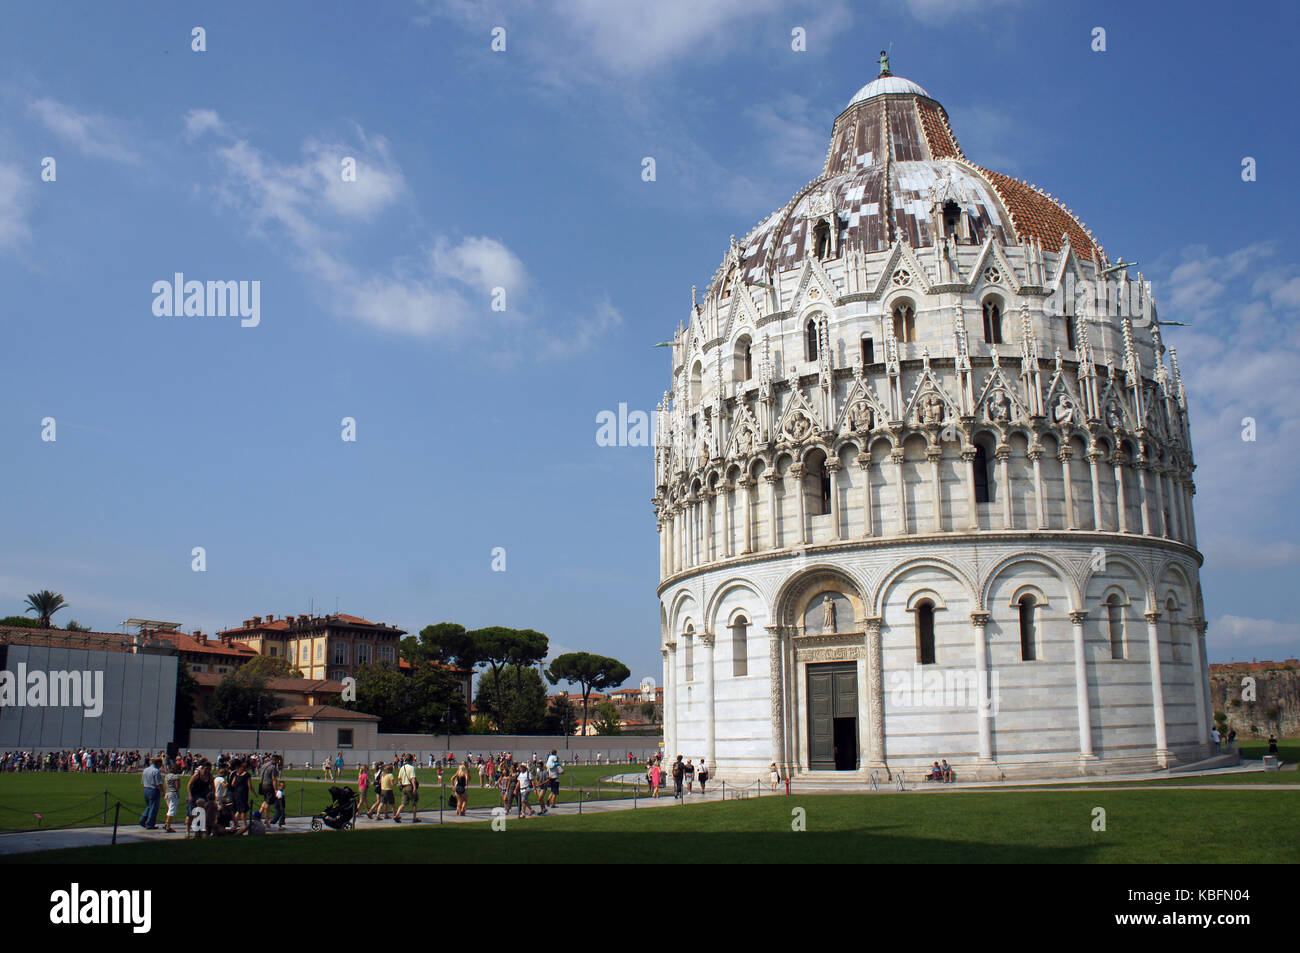 Baptistery of Piza (Pisa) in the Square of Miracles (Piazza dei Miracoli) in Pisa, Italy Stock Photo